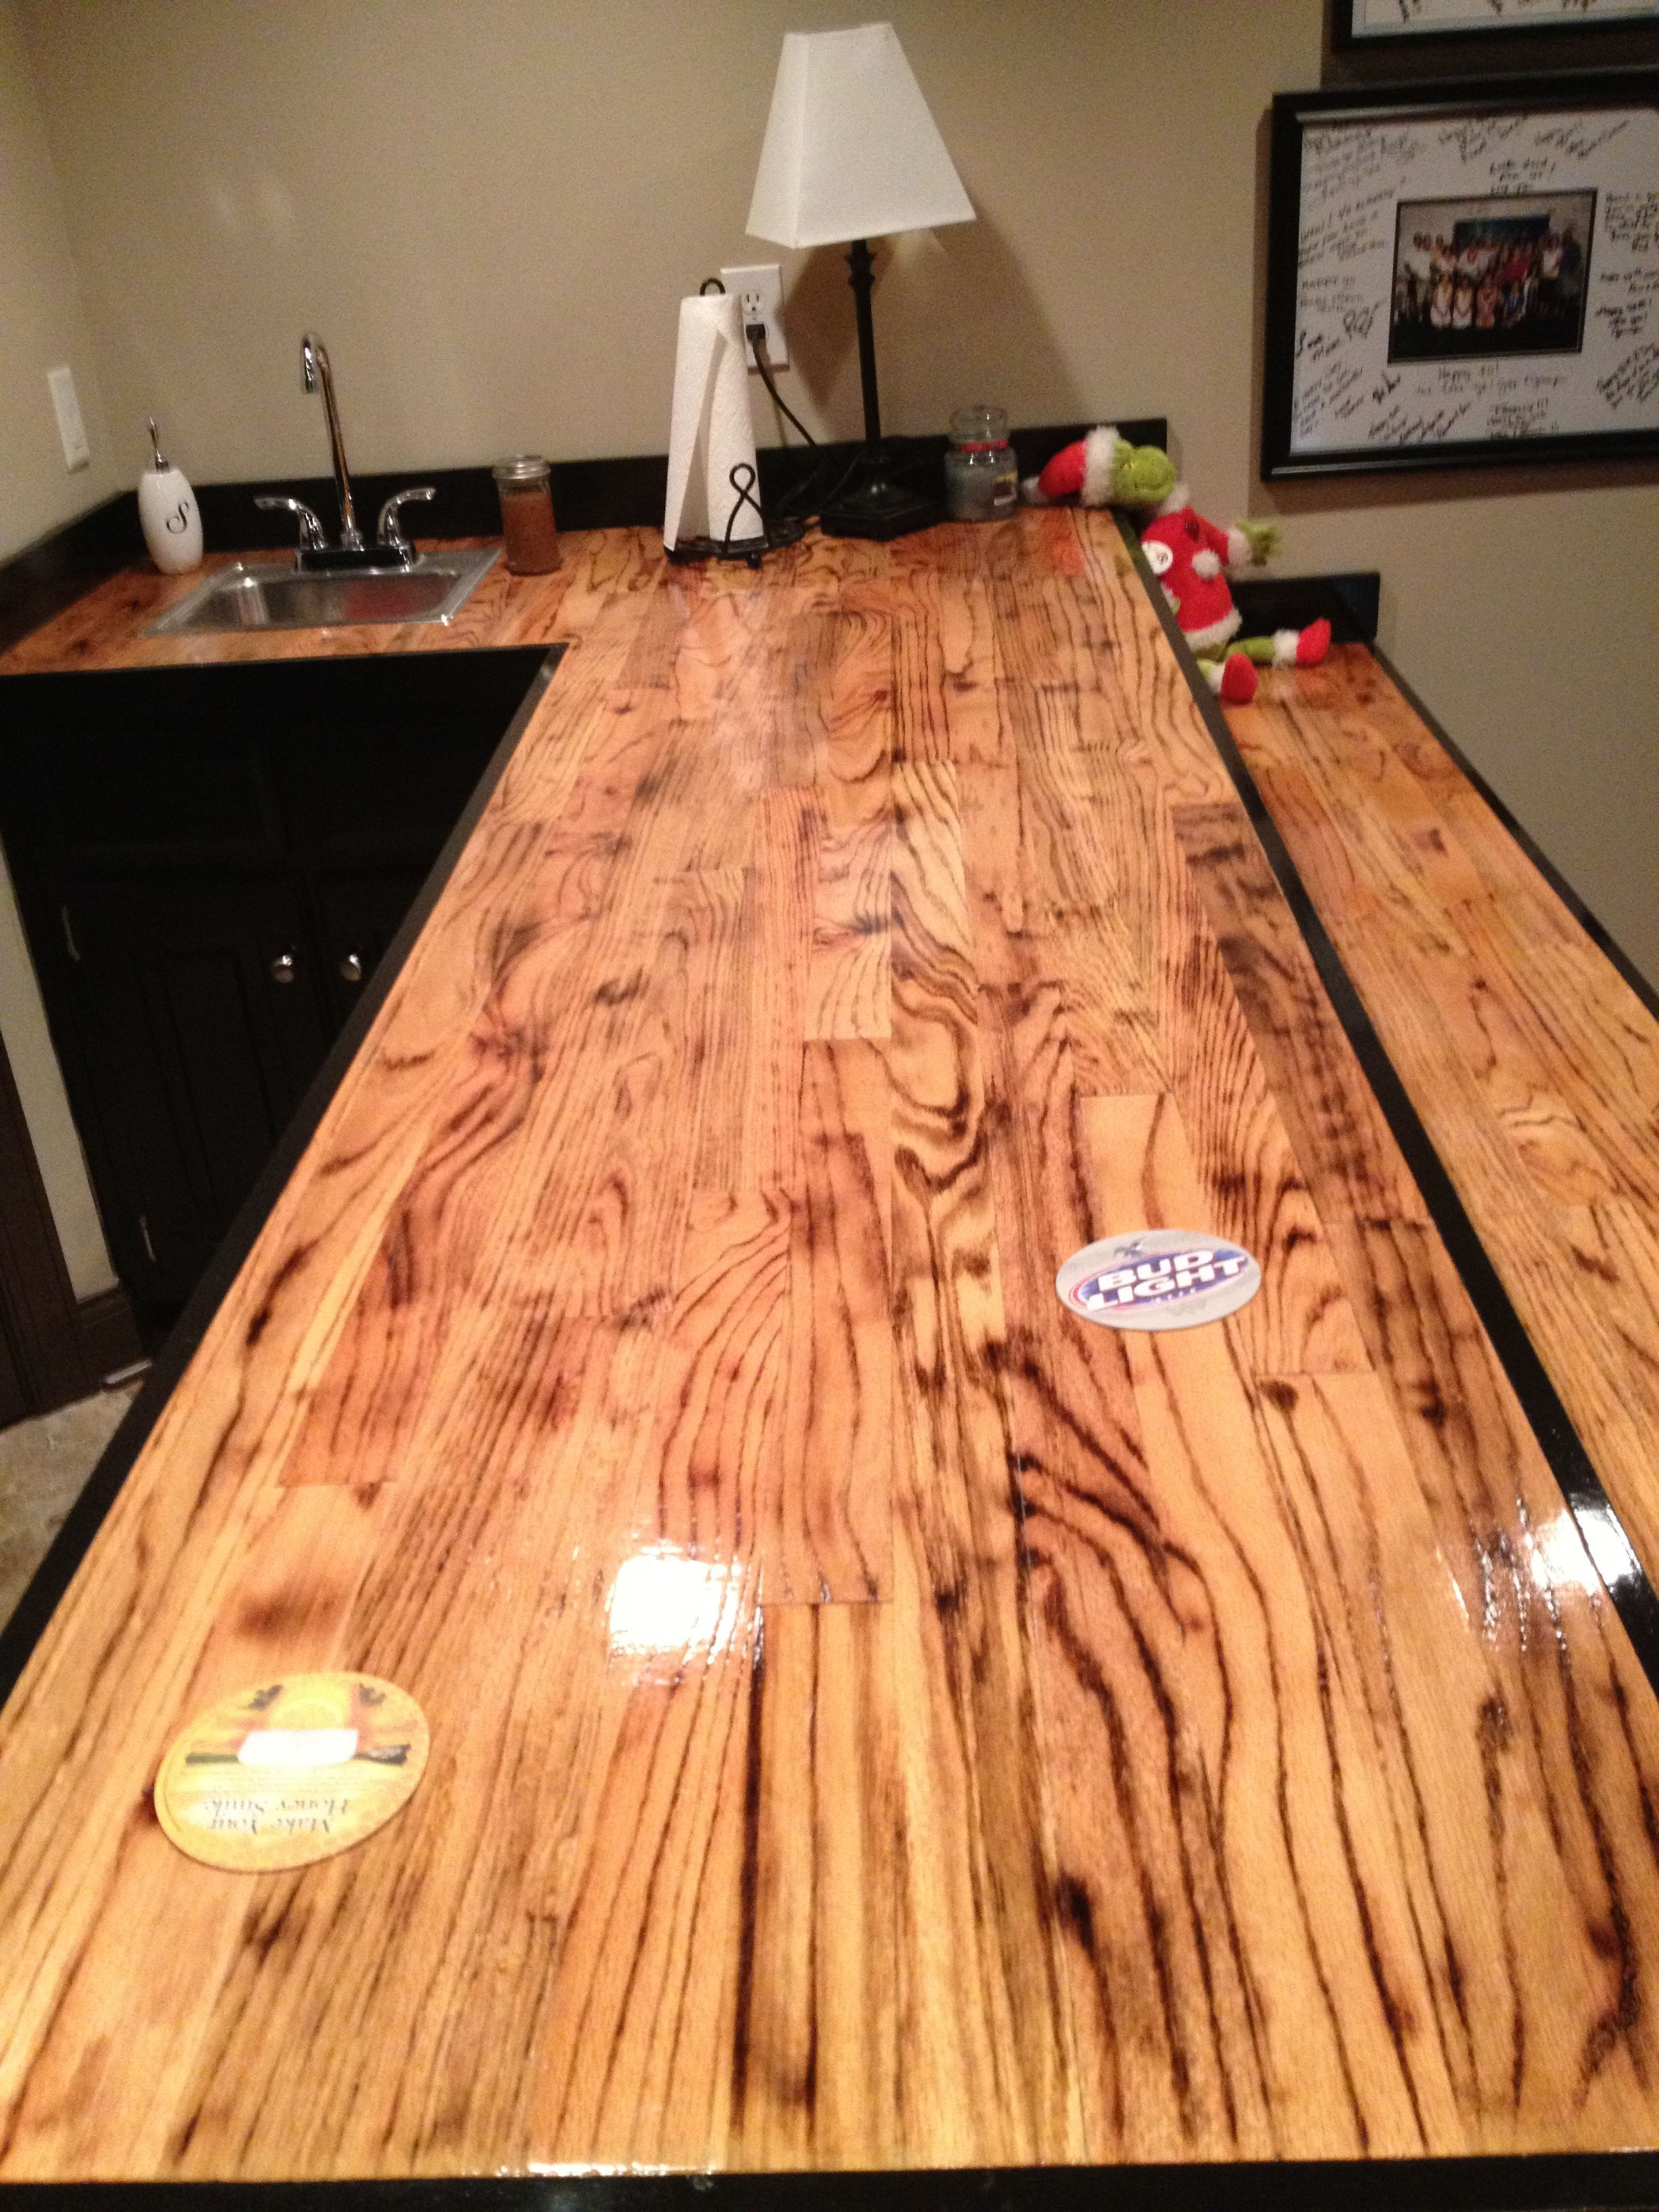 Bar Made Out Of Oak Hardwood Flooring I Torched The Wood Before Applying Clear Coat Wood Bar Top Reclaimed Wood Bars Torch Wood